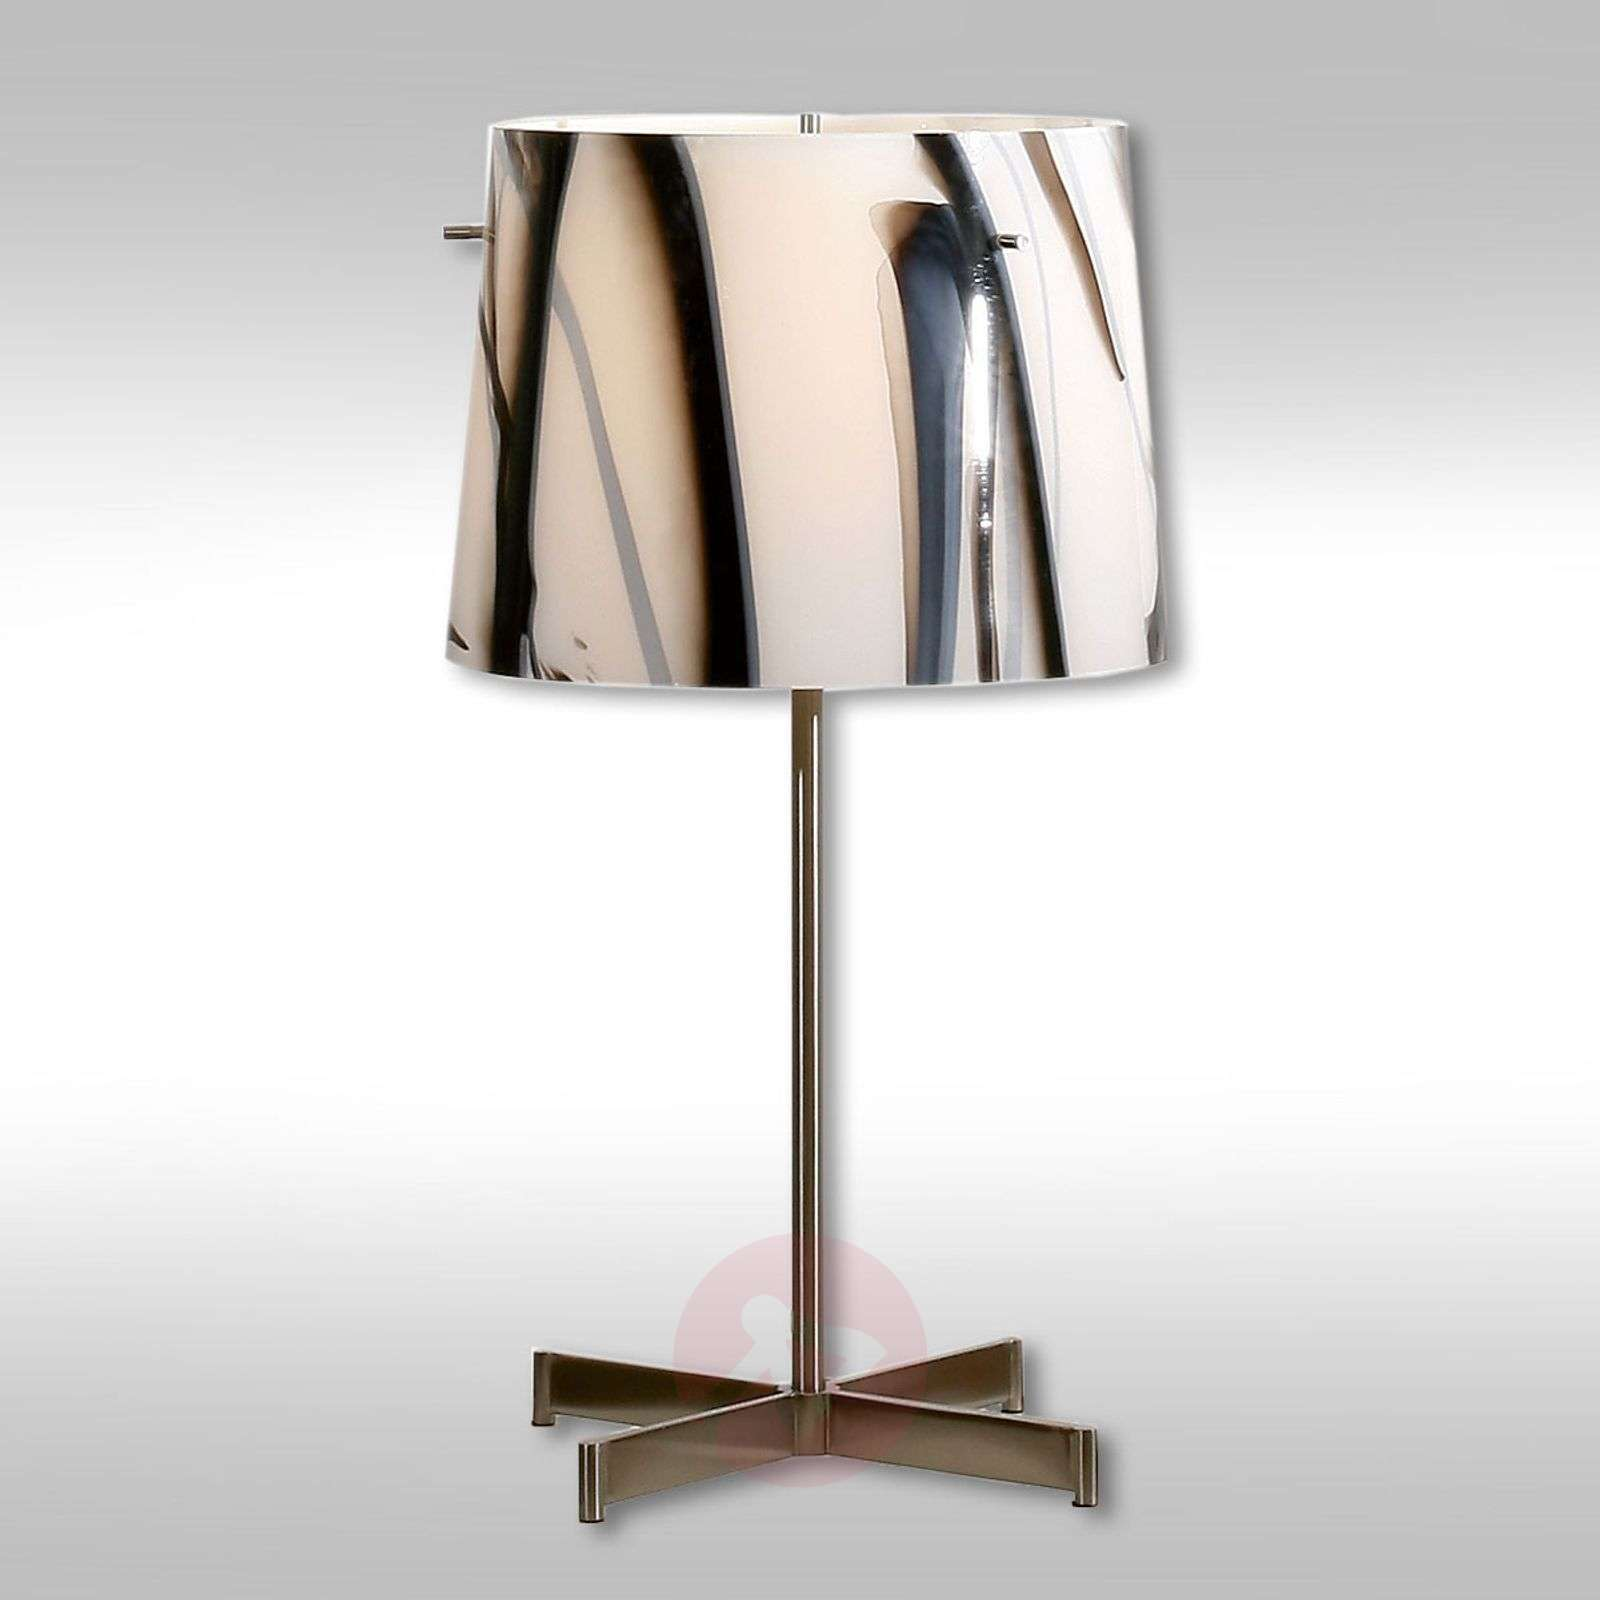 High quality table lamp maris lights high quality table lamp maris 7516316 01 aloadofball Choice Image